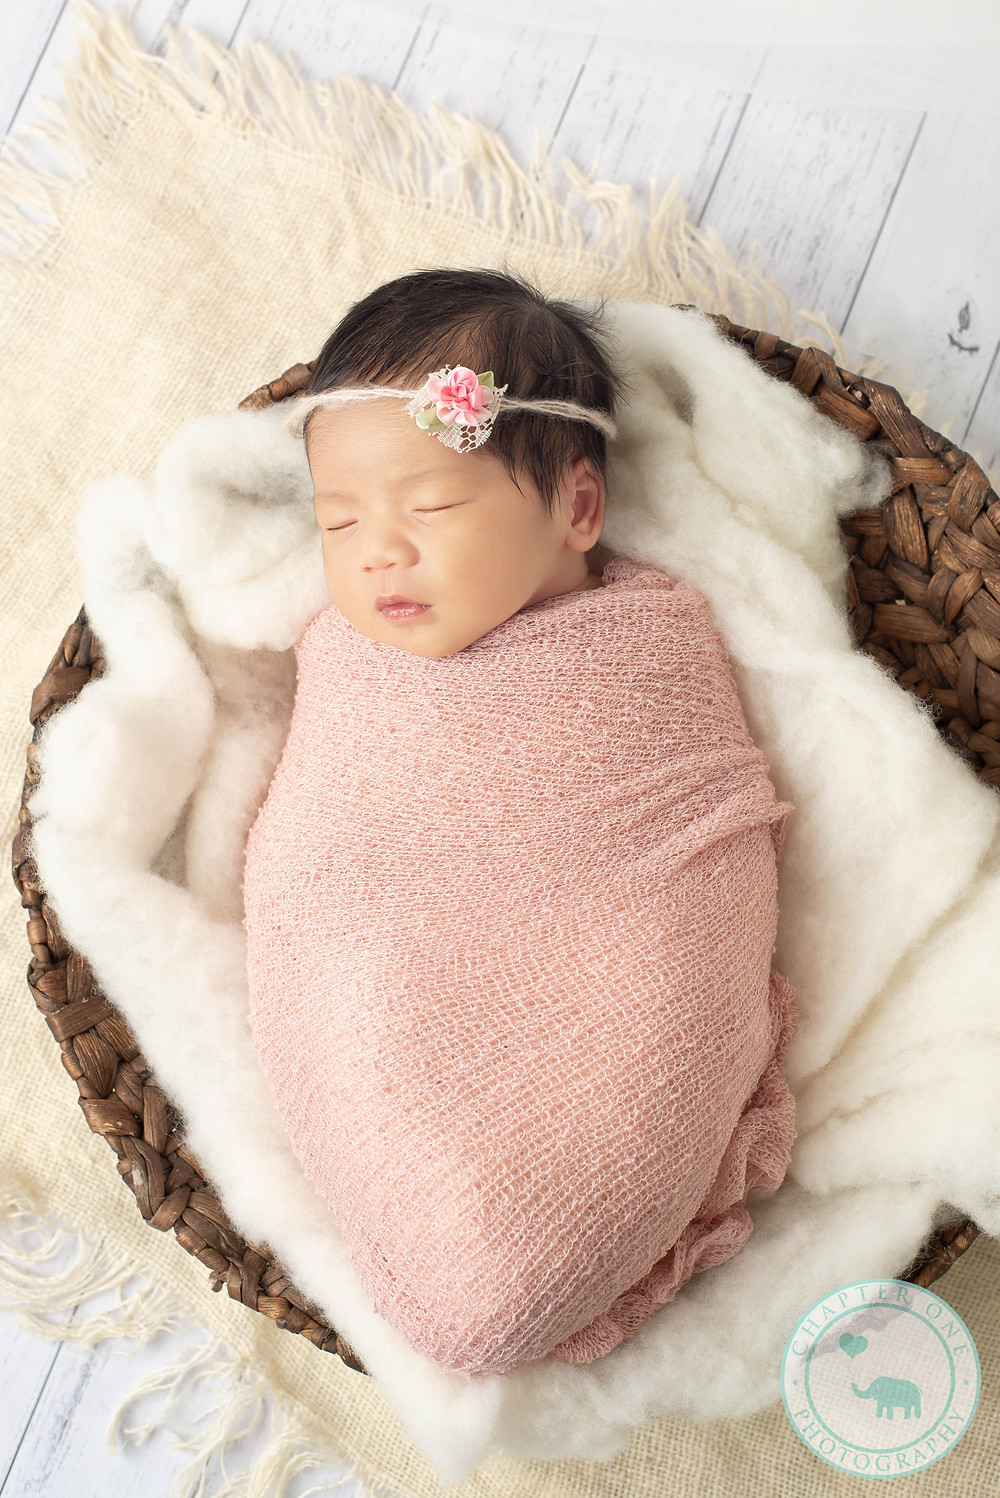 Sleeping newborn girl in basket with pink headband